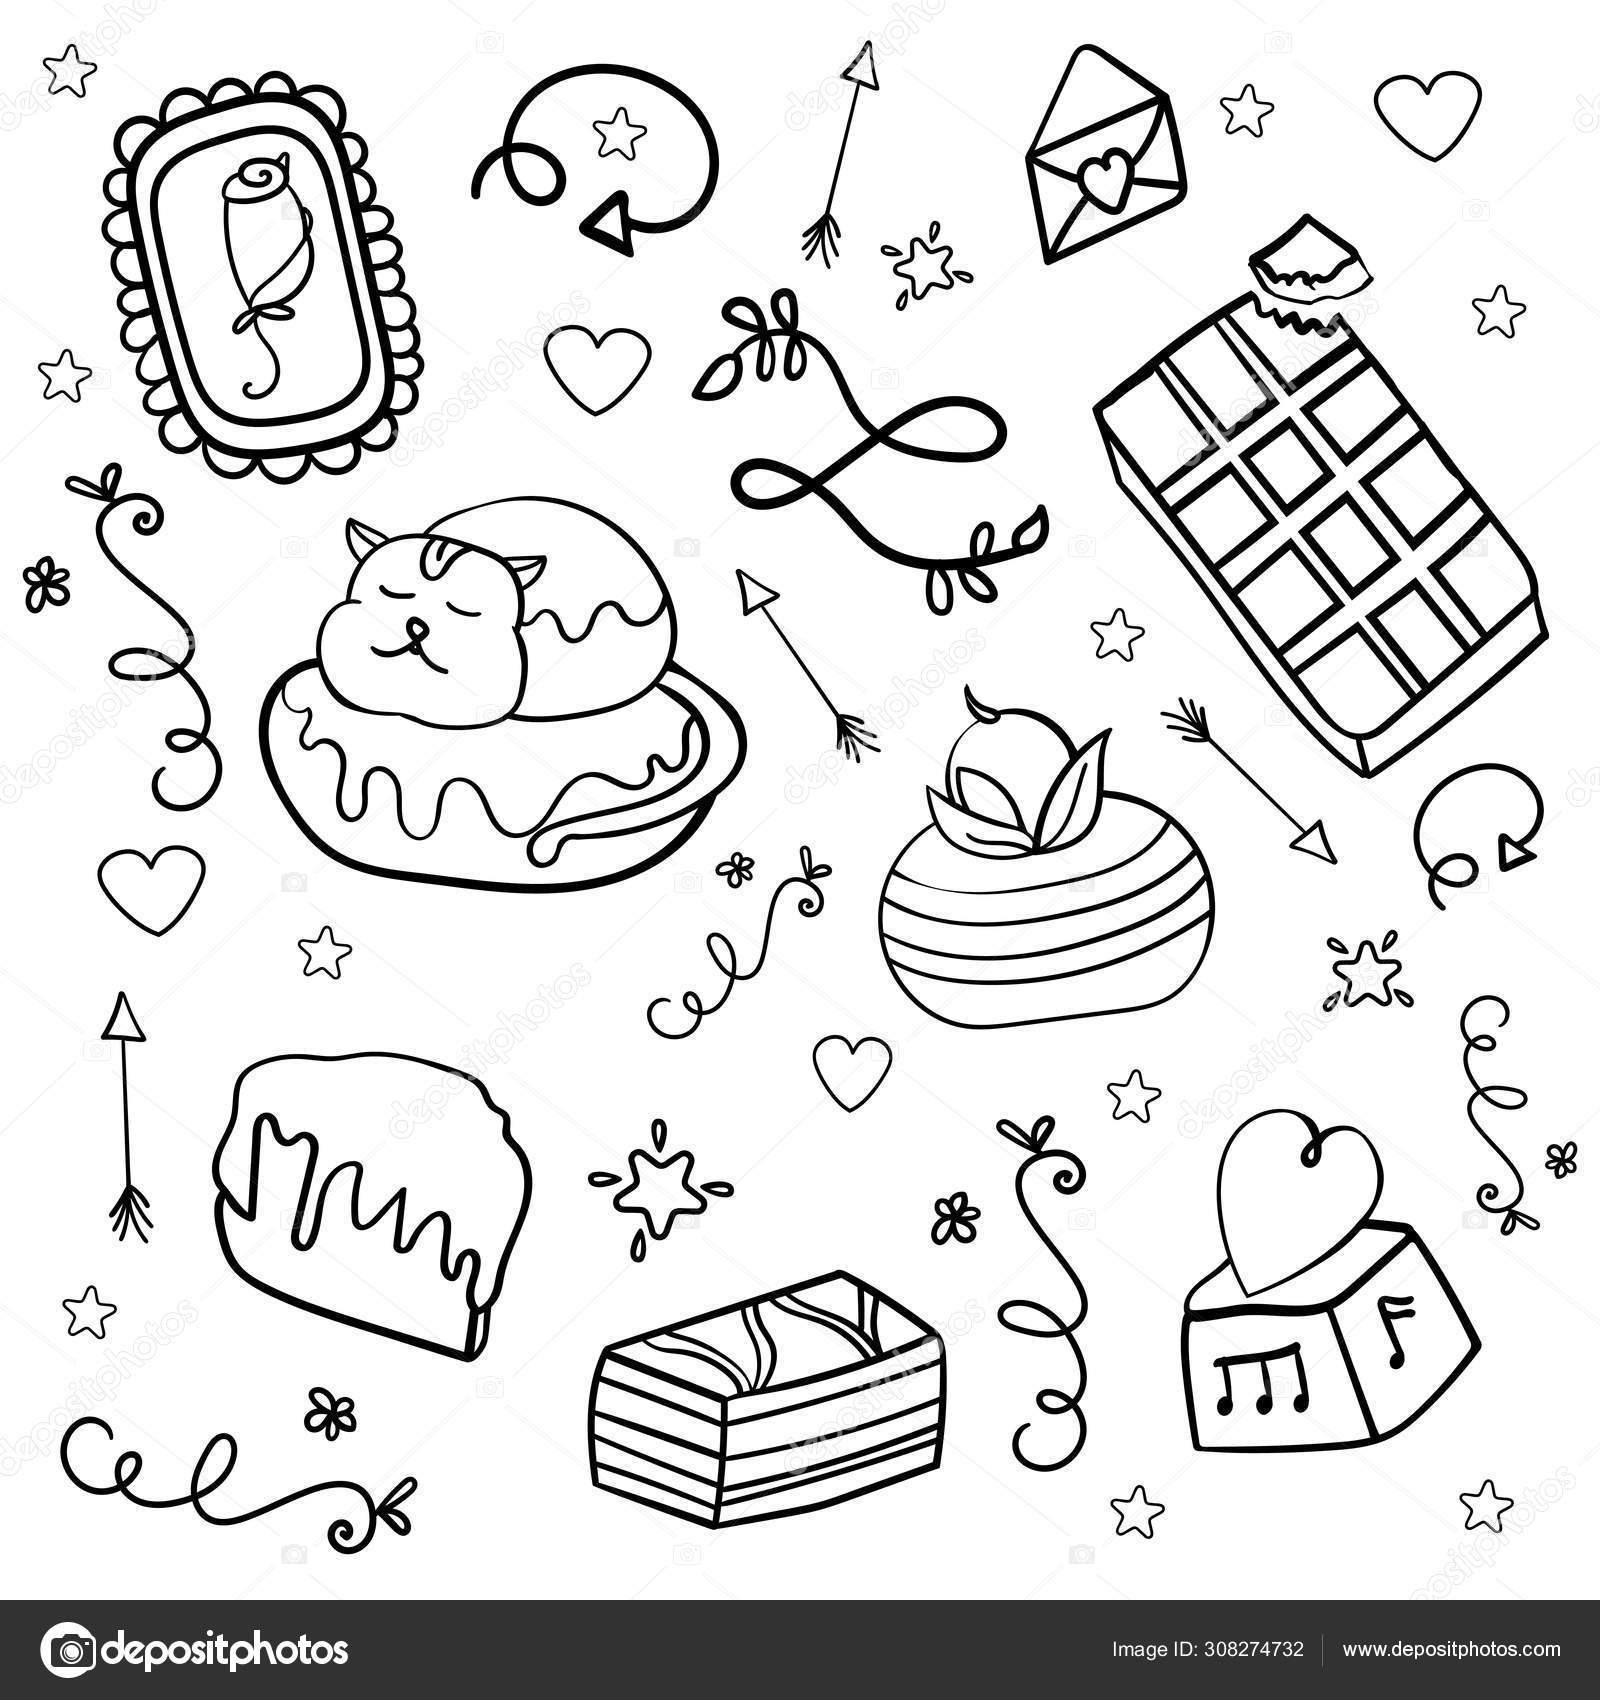 Brownie Bite Coloring Page | Coloring pages, Chocolate chip ... | 1700x1600